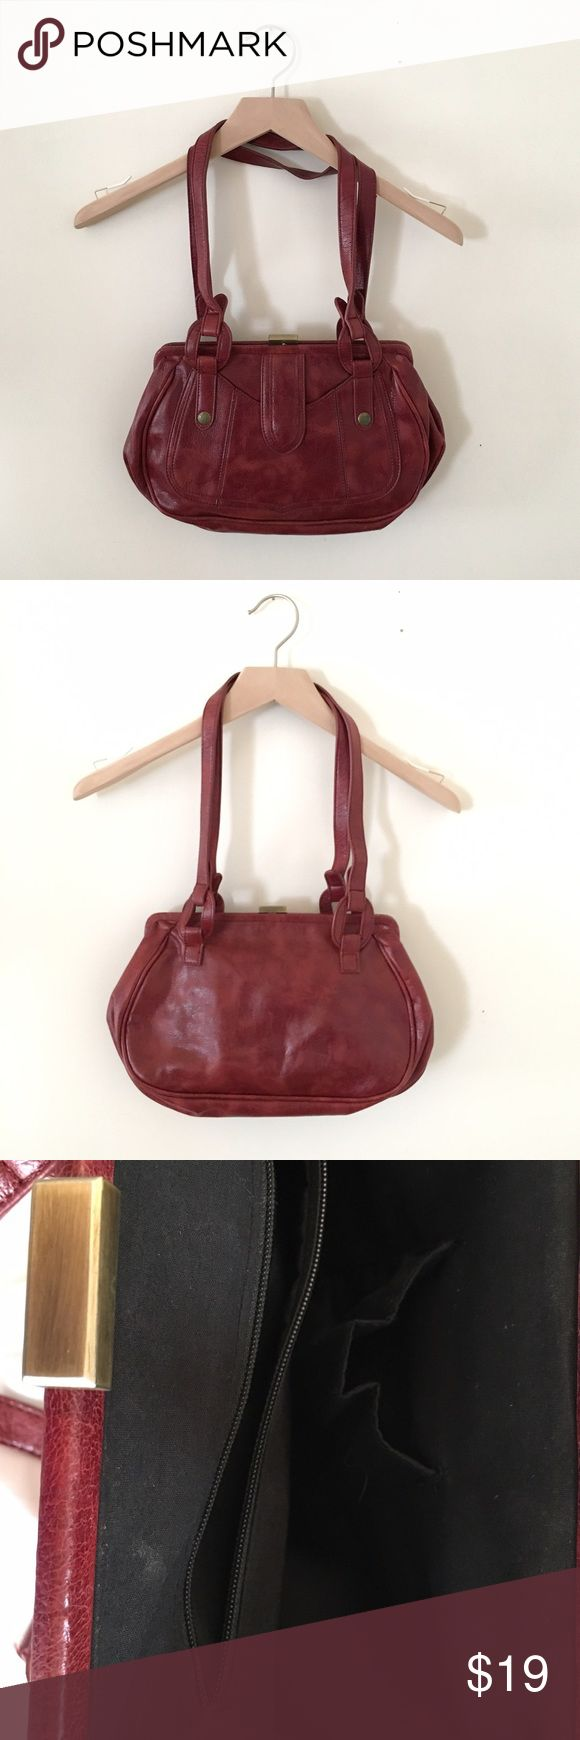 Urban Outfitters Burgundy Purse Leather burgundy purse with interior pockets. Over the shoulder strap with cute detail. Urban Outfitters Bags Shoulder Bags